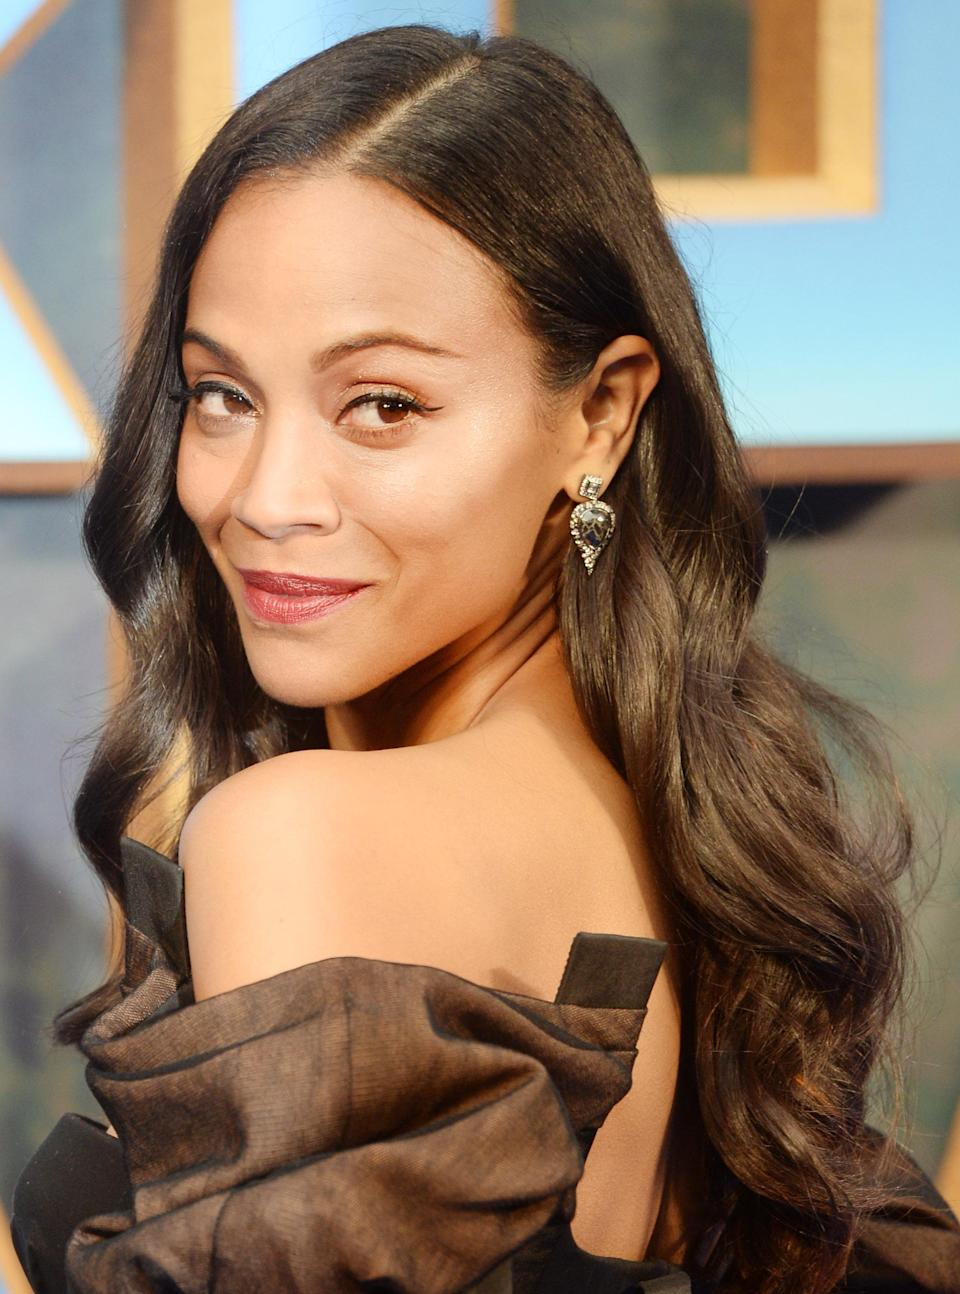 "<p>We might pin green skin and pink ombre on <a href=""https://www.yahoo.com/lifestyle/tagged/zoe-saldana"" data-ylk=""slk:Zoe Saldana"" class=""link rapid-noclick-resp"">Zoe Saldana</a> because of her <a href=""https://www.yahoo.com/lifestyle/zoe-saldanas-3-sons-obsessed-female-superheroes-195350098.html"" data-ylk=""slk:iconic Marvel character;outcm:mb_qualified_link;_E:mb_qualified_link;ct:story;"" class=""link rapid-noclick-resp yahoo-link"">iconic Marvel character</a>, Gamora, but when she's not trying to save the galaxy from certain doom, the Dominican actress shines as brightly as <a href=""https://www.yahoo.com/lifestyle/celebrity-hairstylist-says-glass-hair-isnt-new-explains-silk-press-get-look-180512400.html"" data-ylk=""slk:her long and glossy strands;outcm:mb_qualified_link;_E:mb_qualified_link;ct:story;"" class=""link rapid-noclick-resp yahoo-link"">her long and glossy strands</a> at every red carpet. Red is her lipstick shade of choice, whether she's going subtly rosy or sultry crimson. Check out these <a href=""https://www.yahoo.com/lifestyle/red-lipsticks-last-well-reception-120000736.html"" data-ylk=""slk:budge-proof red lipstick;outcm:mb_qualified_link;_E:mb_qualified_link;ct:story;"" class=""link rapid-noclick-resp yahoo-link"">budge-proof red lipstick</a> options for your next event. (Photo: Getty Images) </p>"